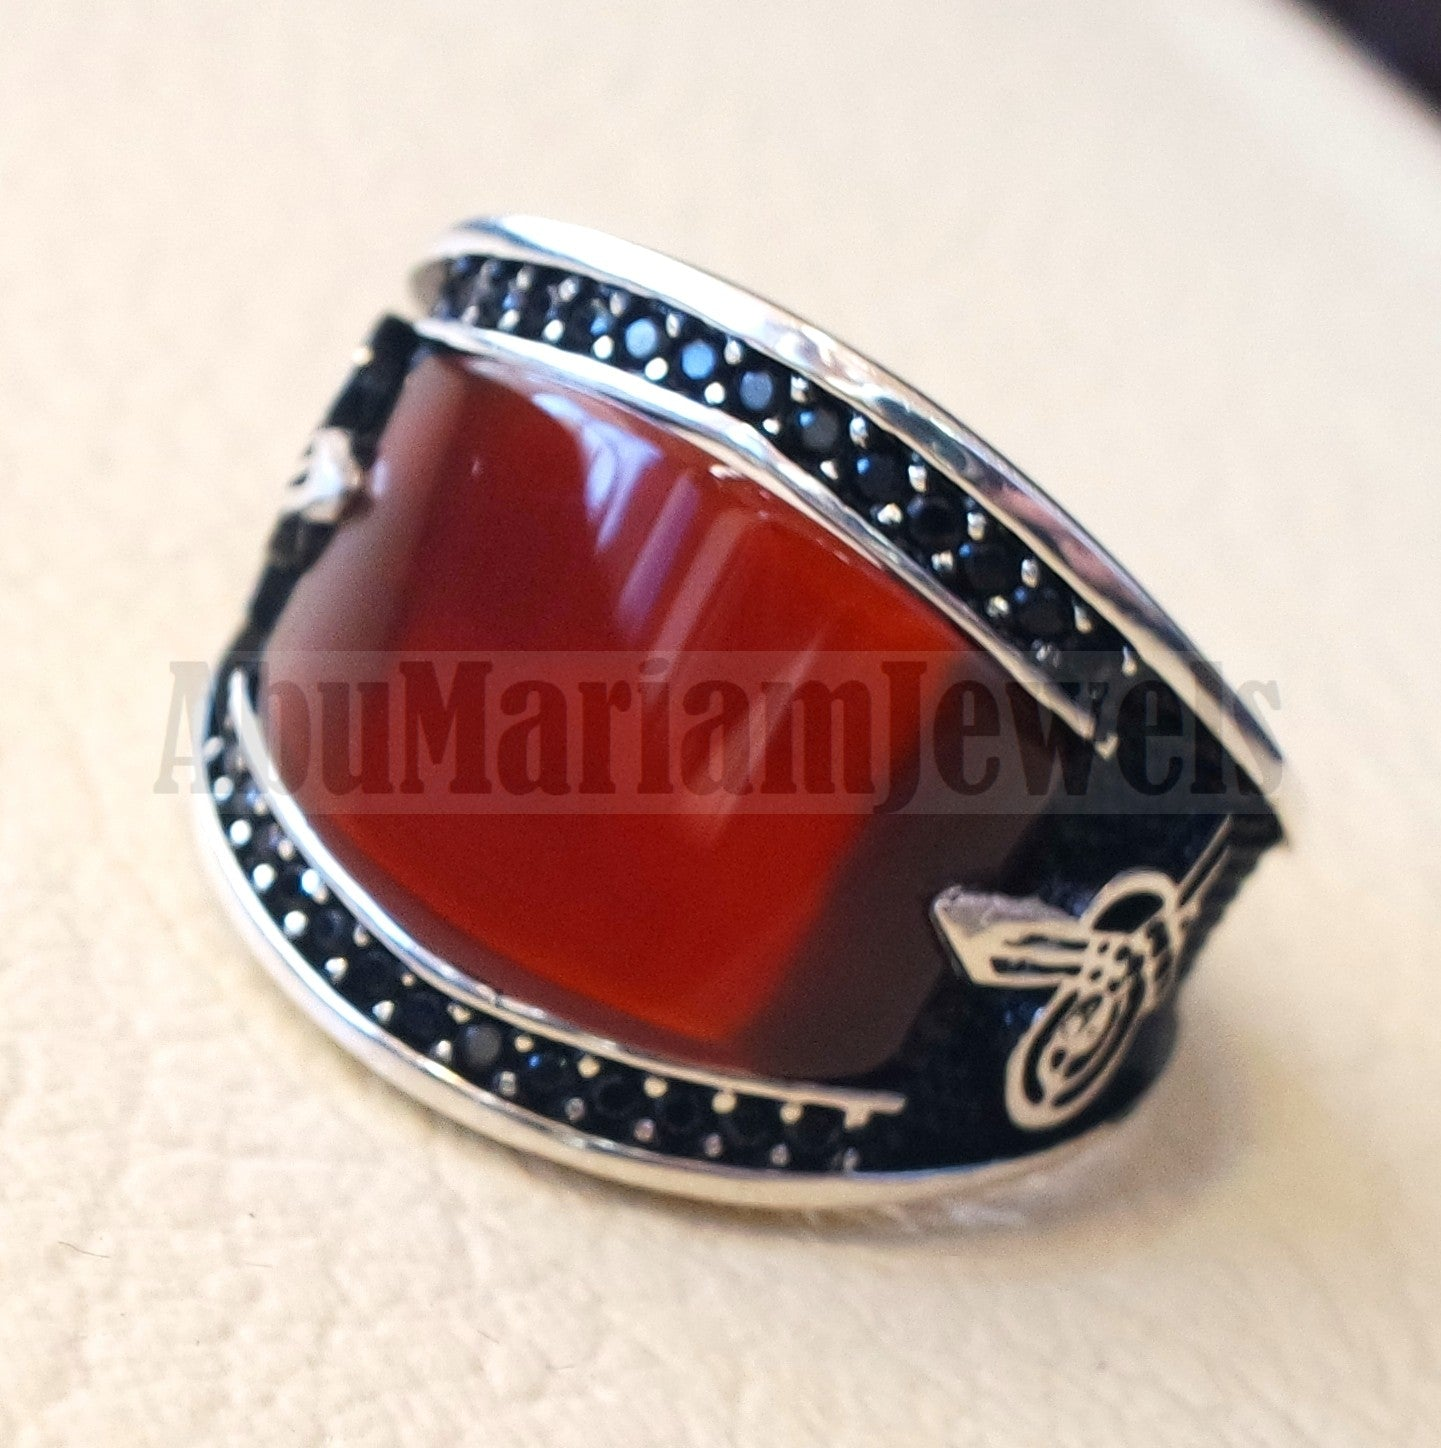 agate red aqeeq natural flat cushion stone man ring all sizes arabic Ottoman turkey antique style black zircon side setting